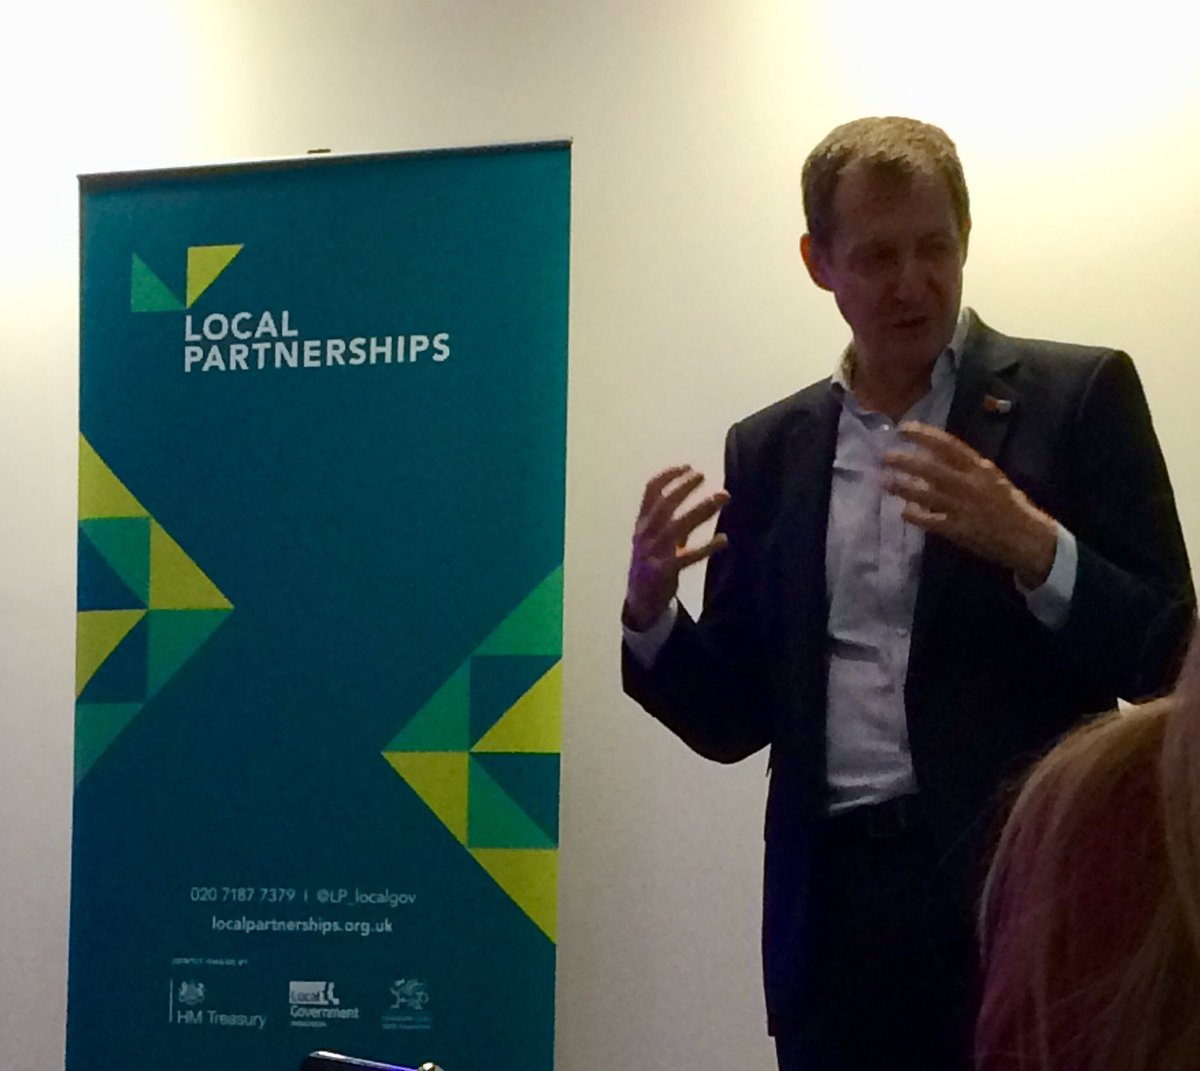 RT @HuwRussell It was a real pleasure to hear Alistair Campbell @campbellclaret as our guest speaker at the @LP_localgov staff awayday - searingly honest, insightful and very funny #politics #football #mentalhealth